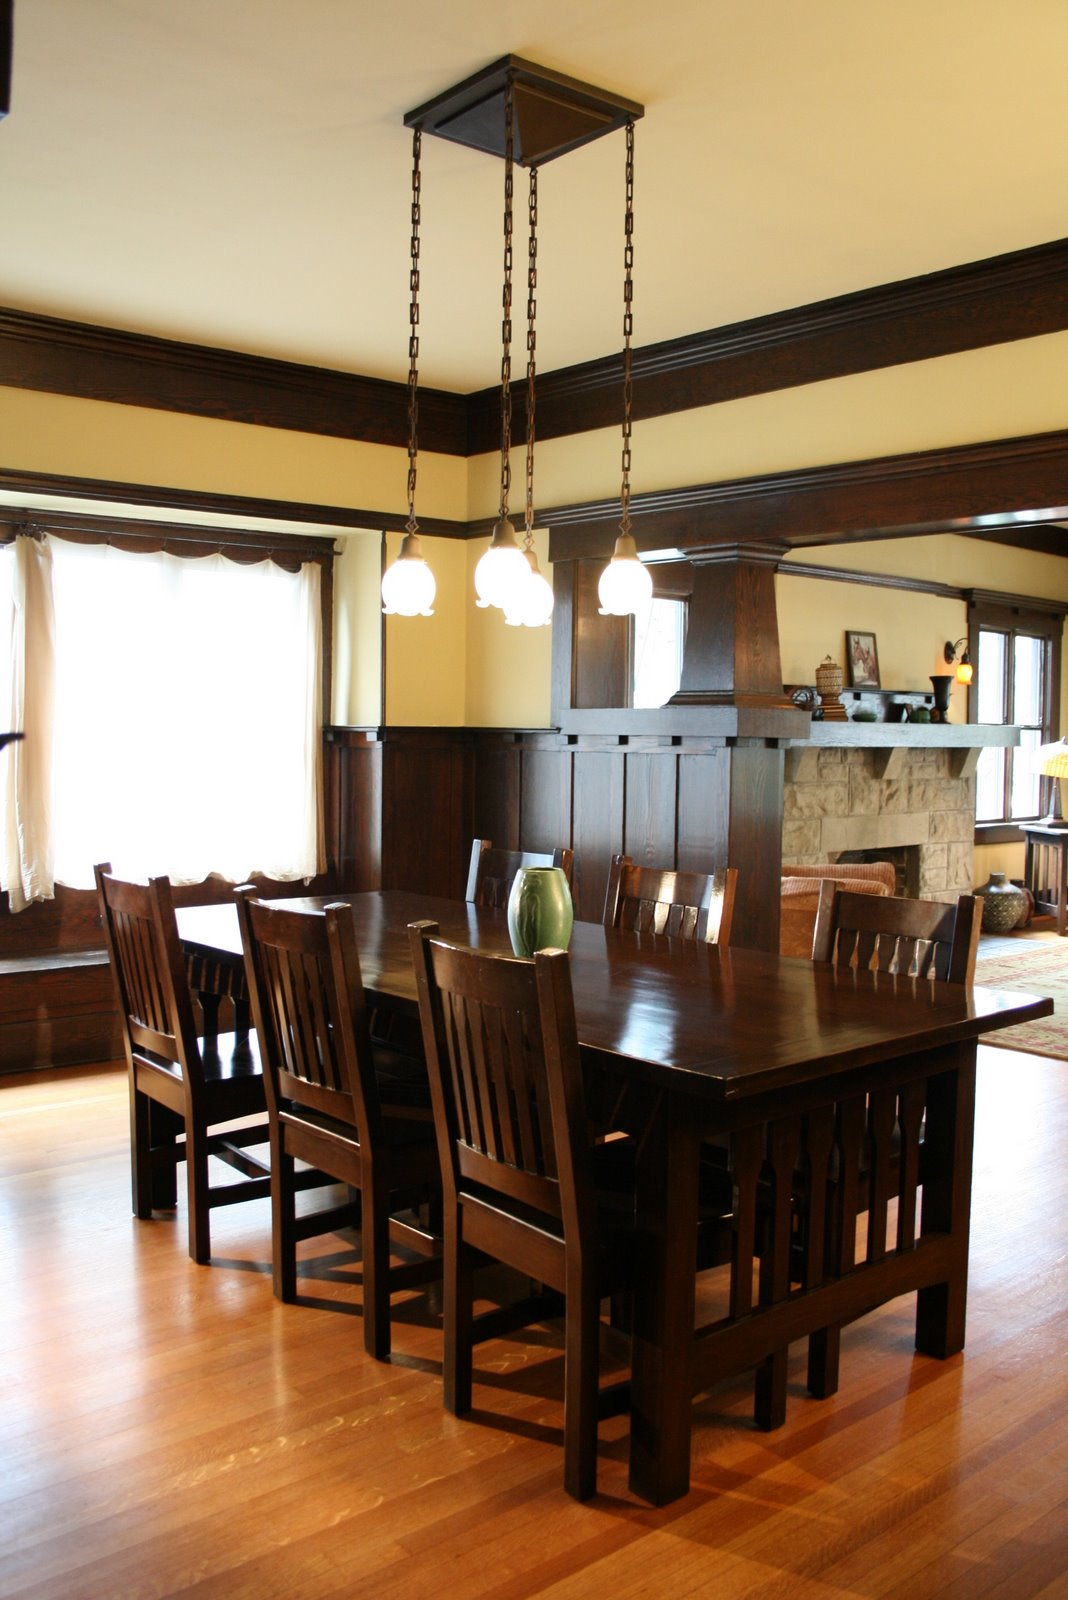 Craftsman style Craftsman home interior